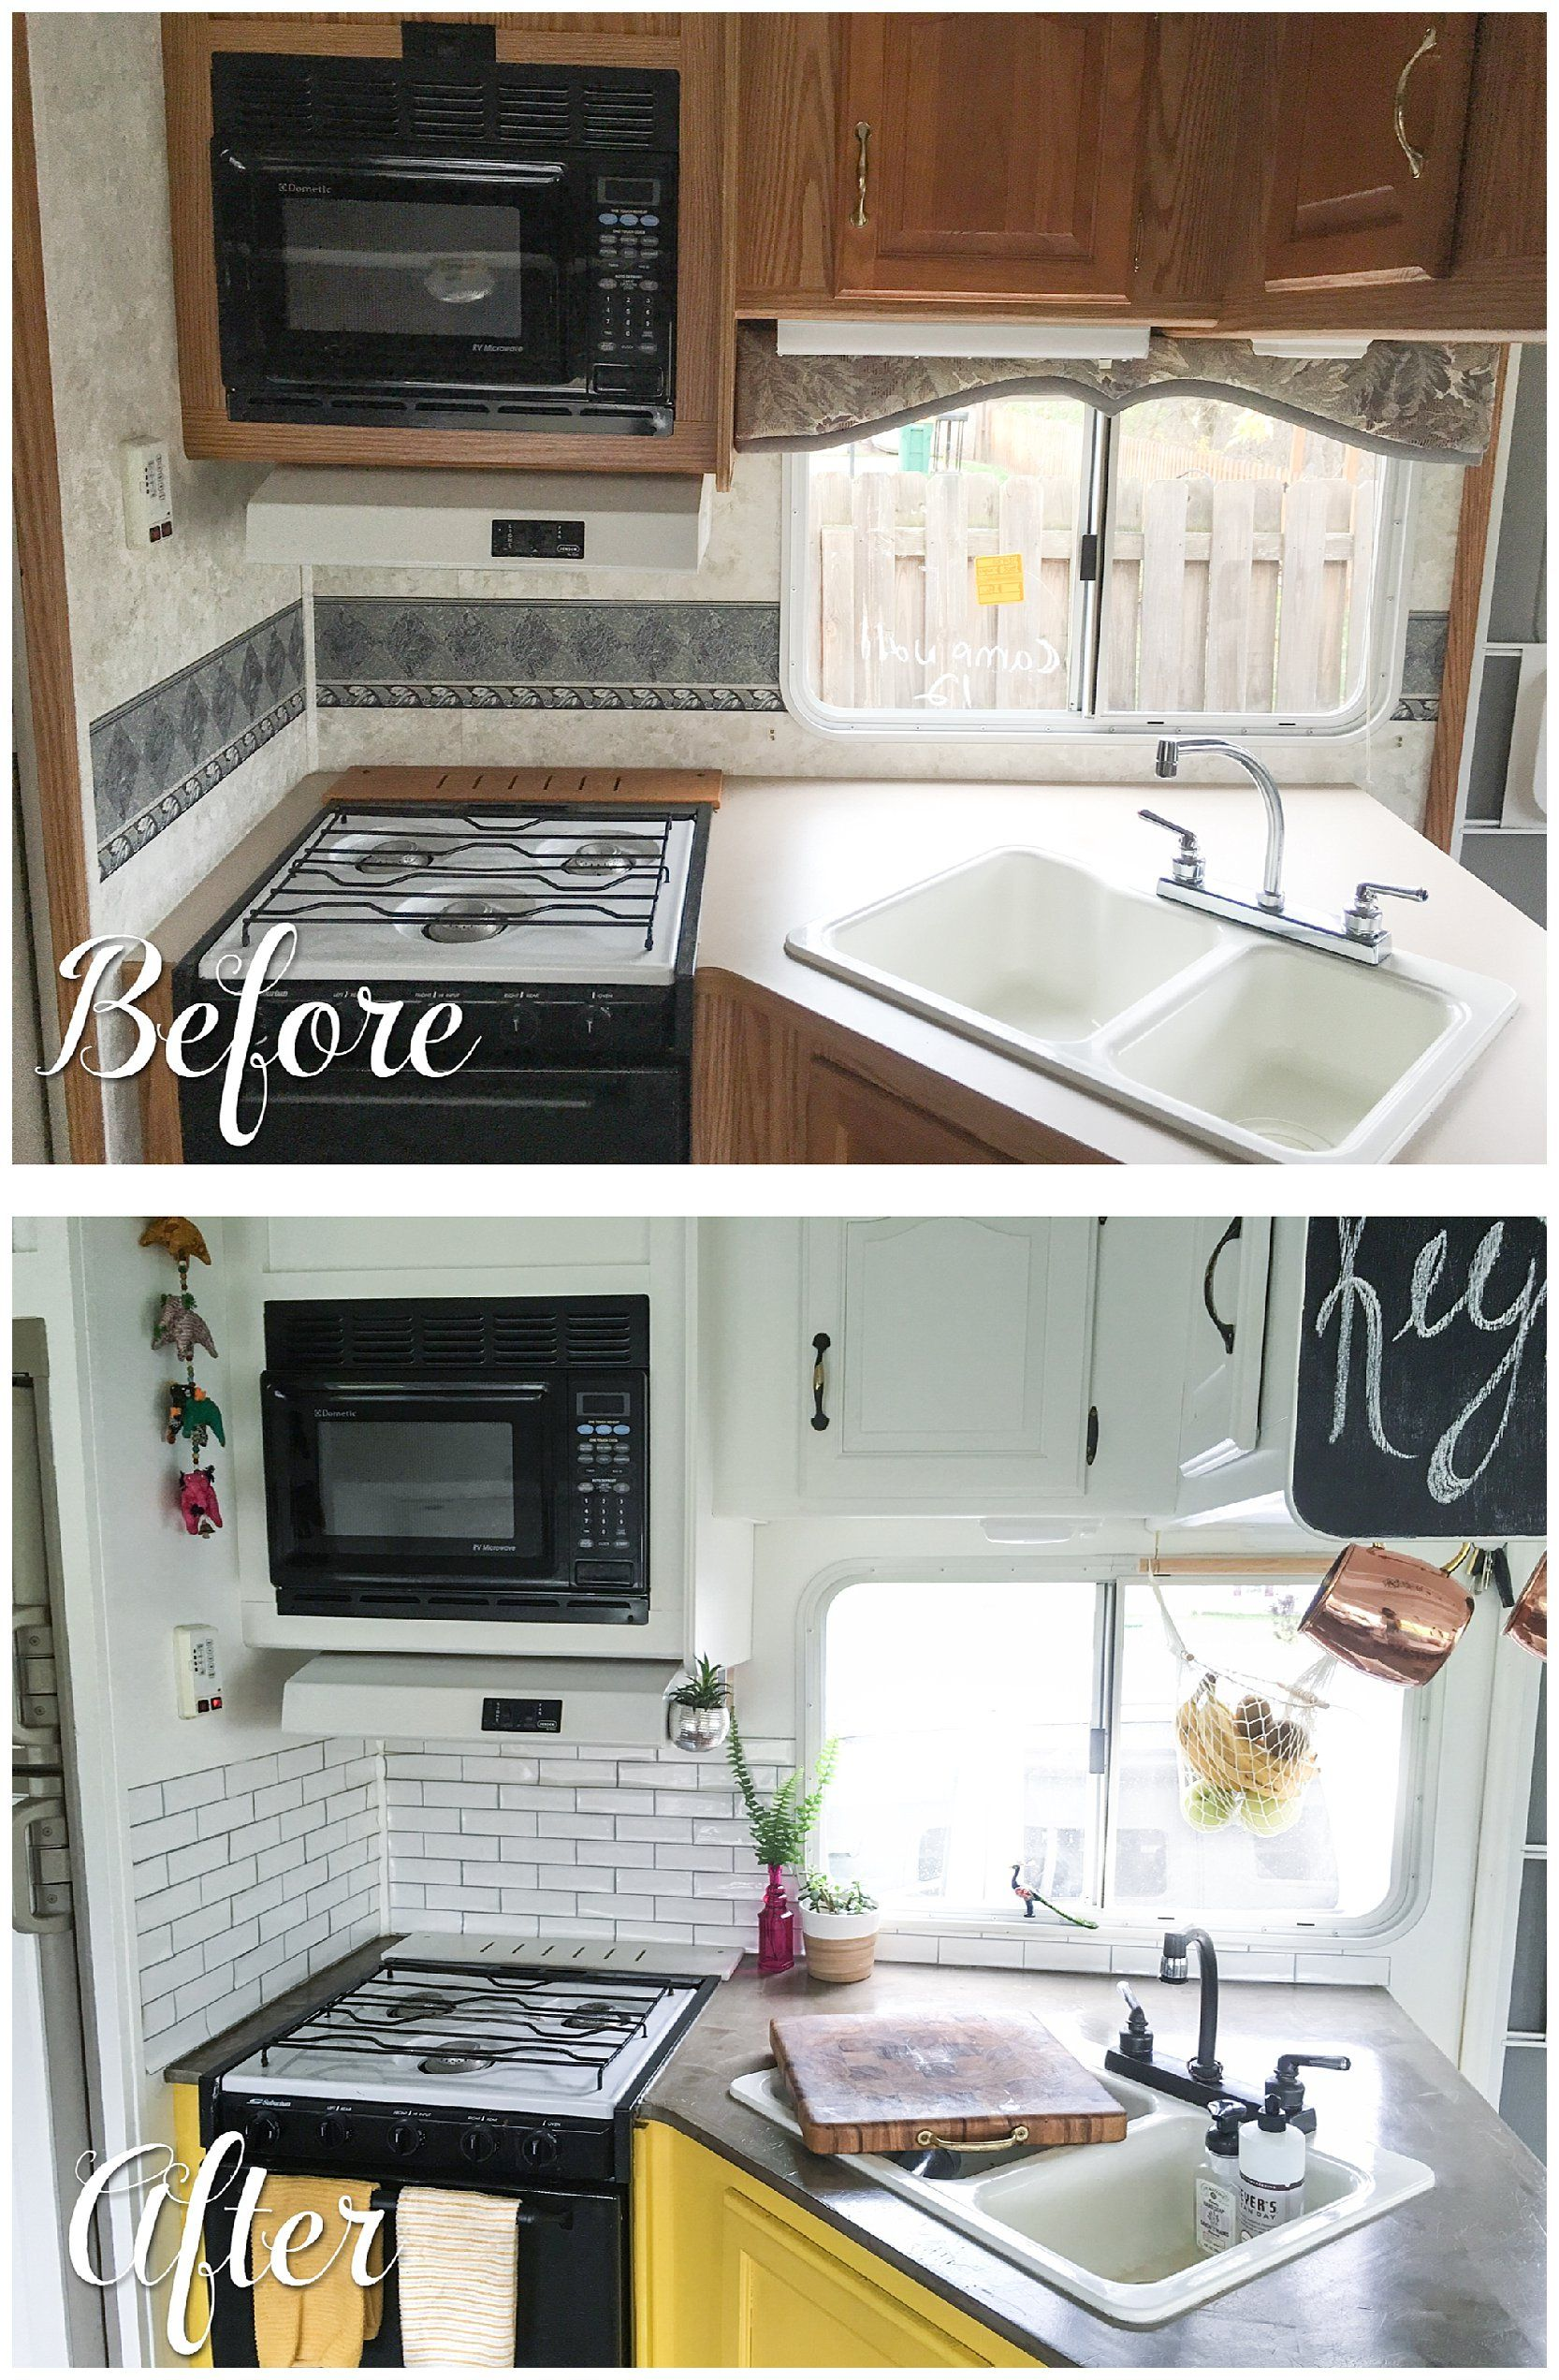 Camper Remodel Ideas 23 | Rv, Camper remodeling and Kitchens